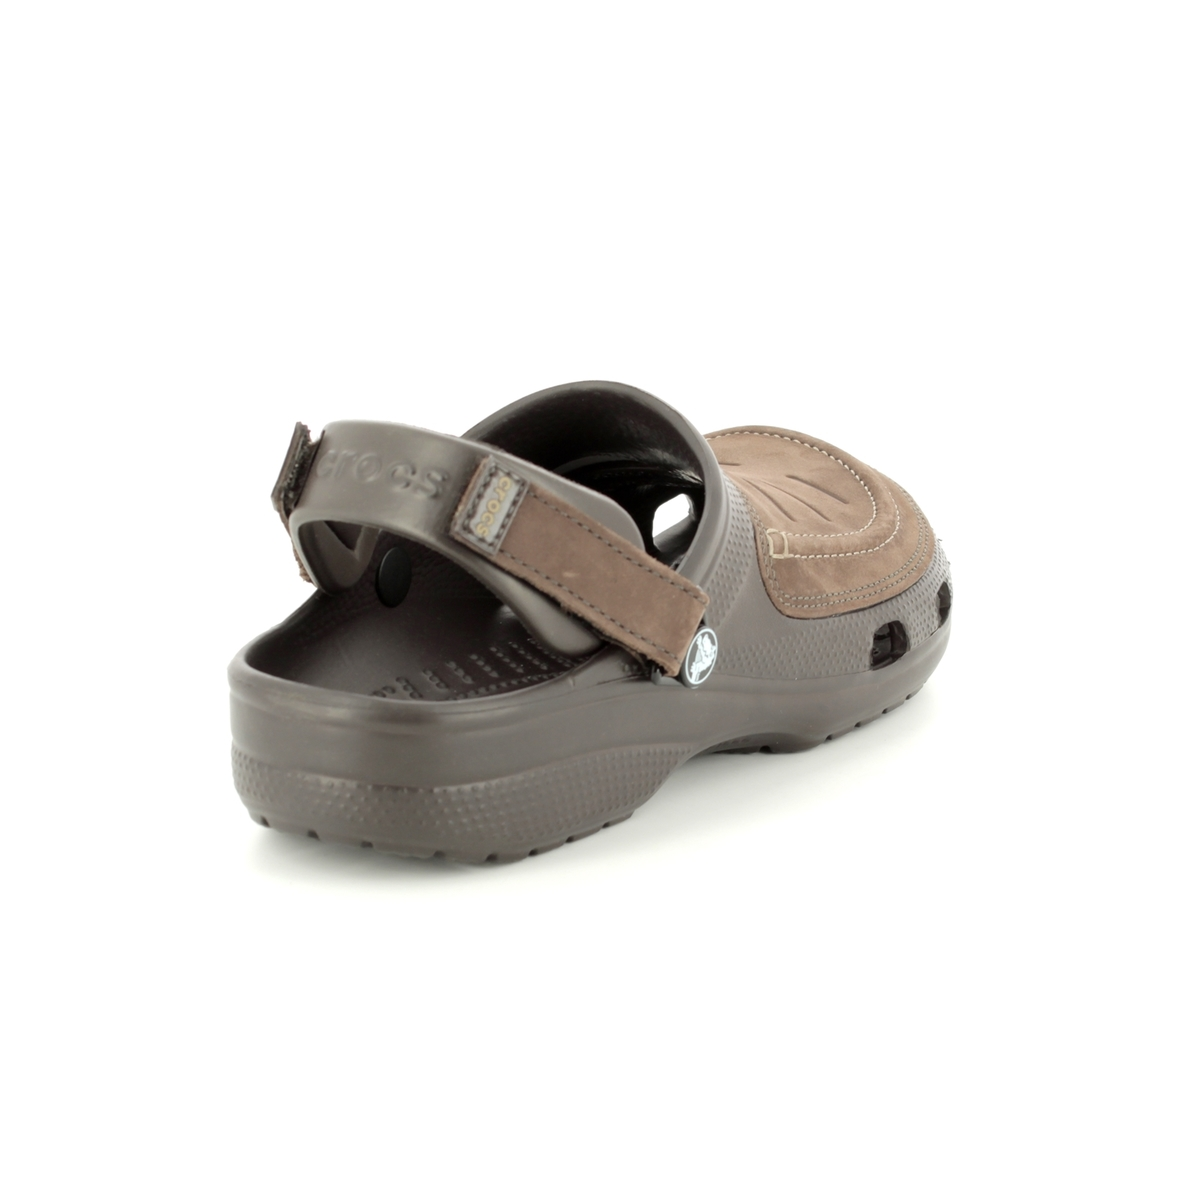 5c21fe49f0ad3 Crocs Sandals - Brown - 205177 22Z YUKON VISTA